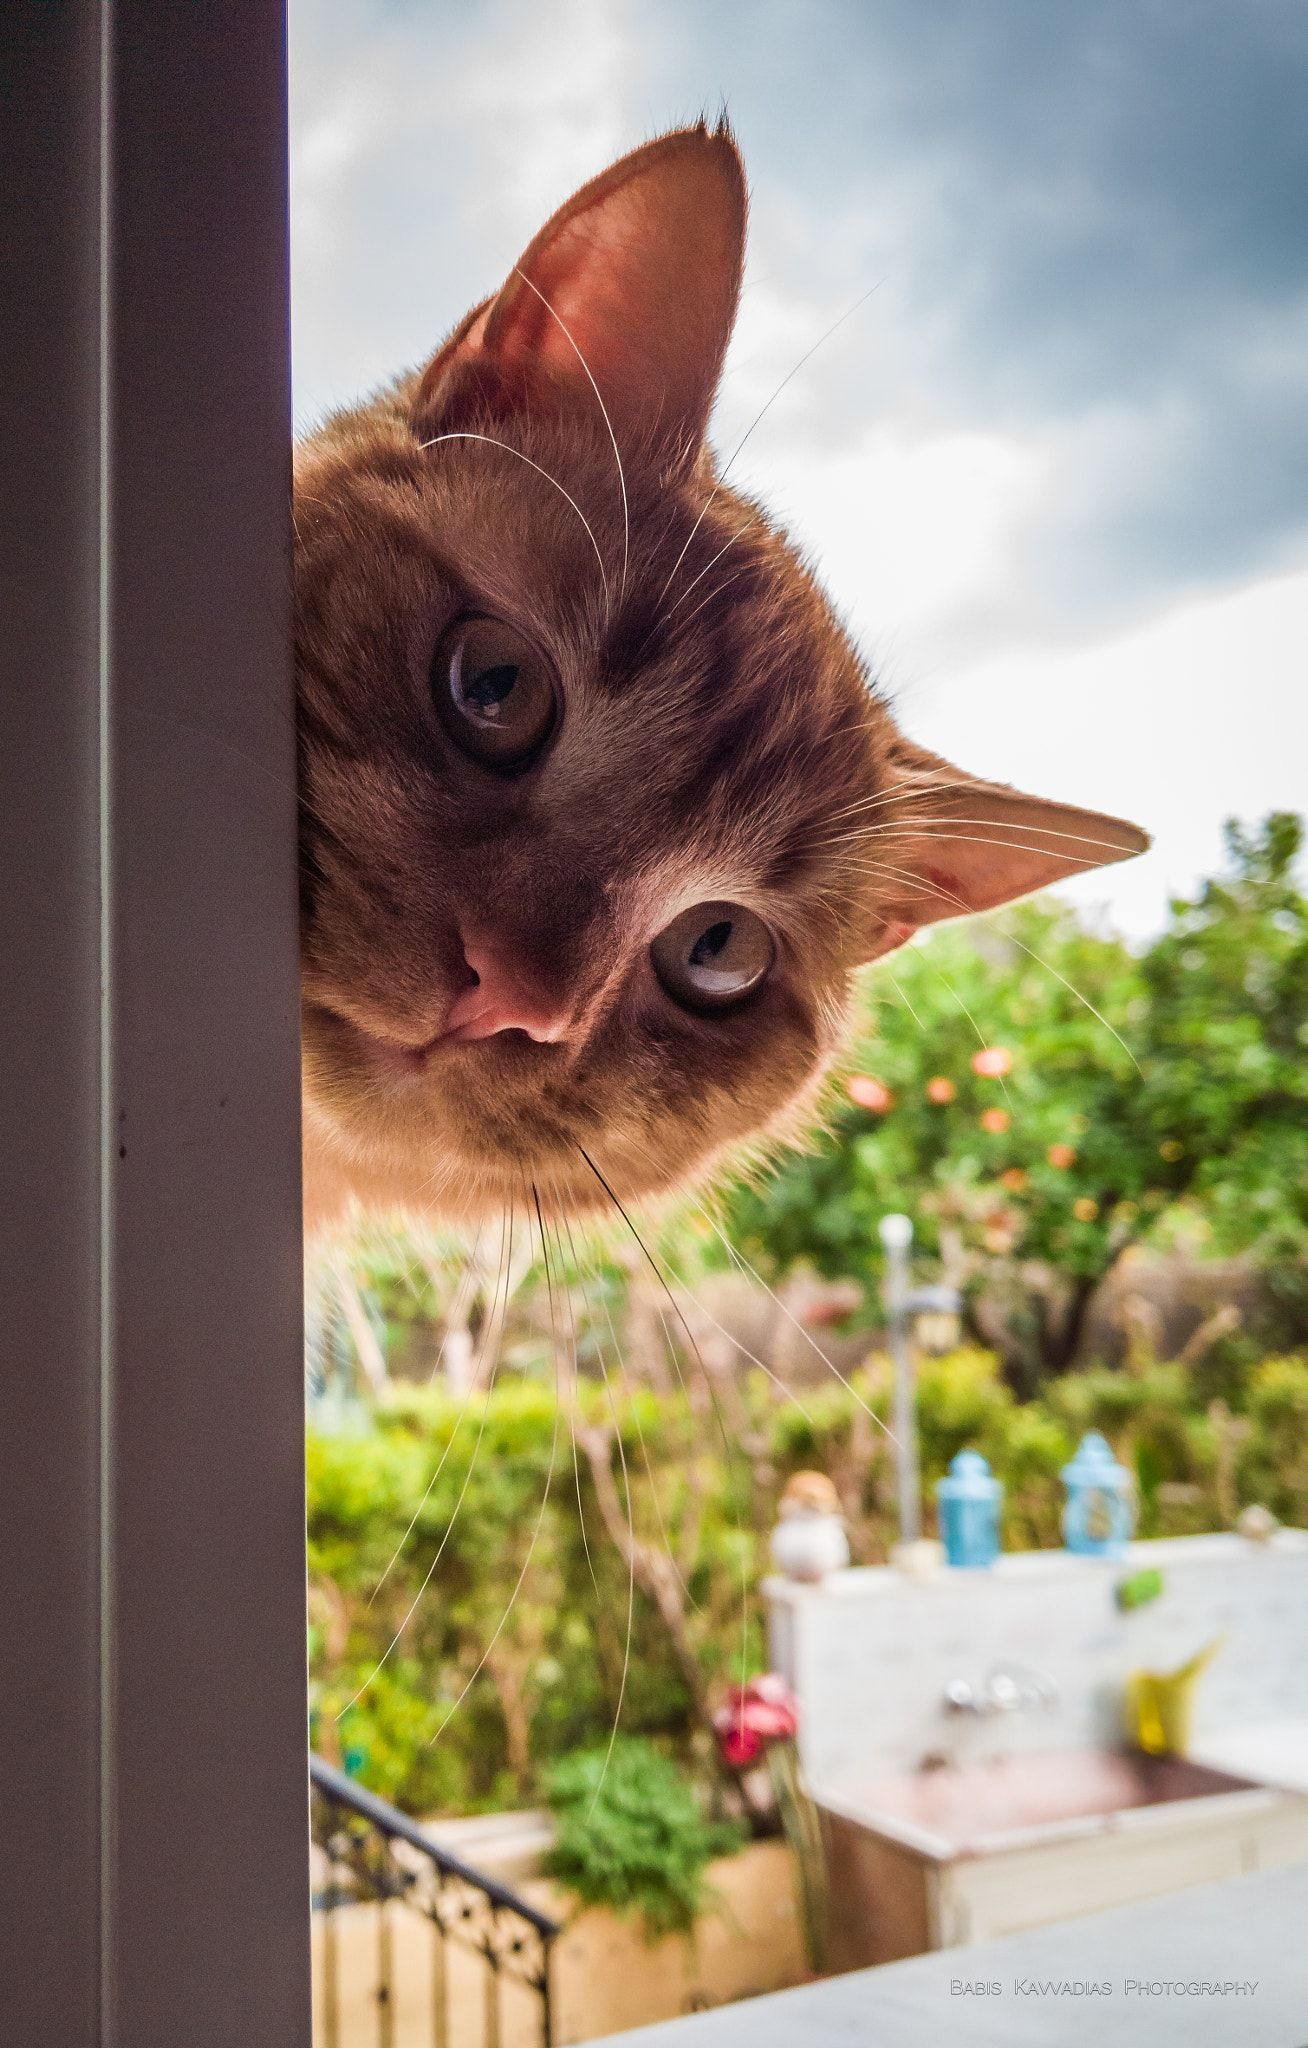 Hello May I Come In Tigris My Cat Peeking Inside My Room From The Open Window Bichinhos Fofos Gatinhos Fofos Gatos